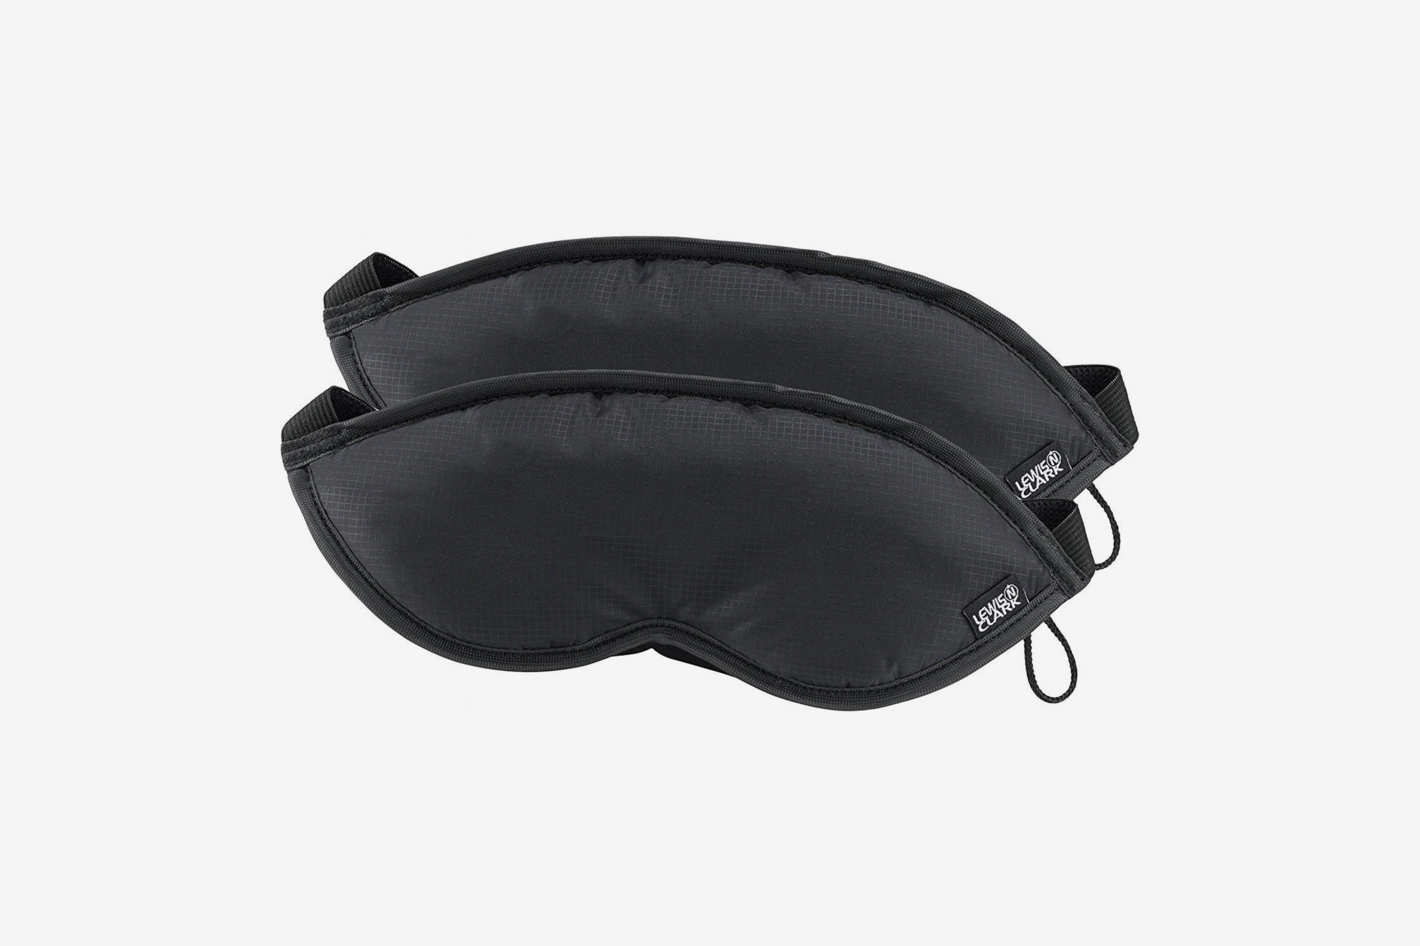 Lewis N. Clark Luggage Comfort Eye mask